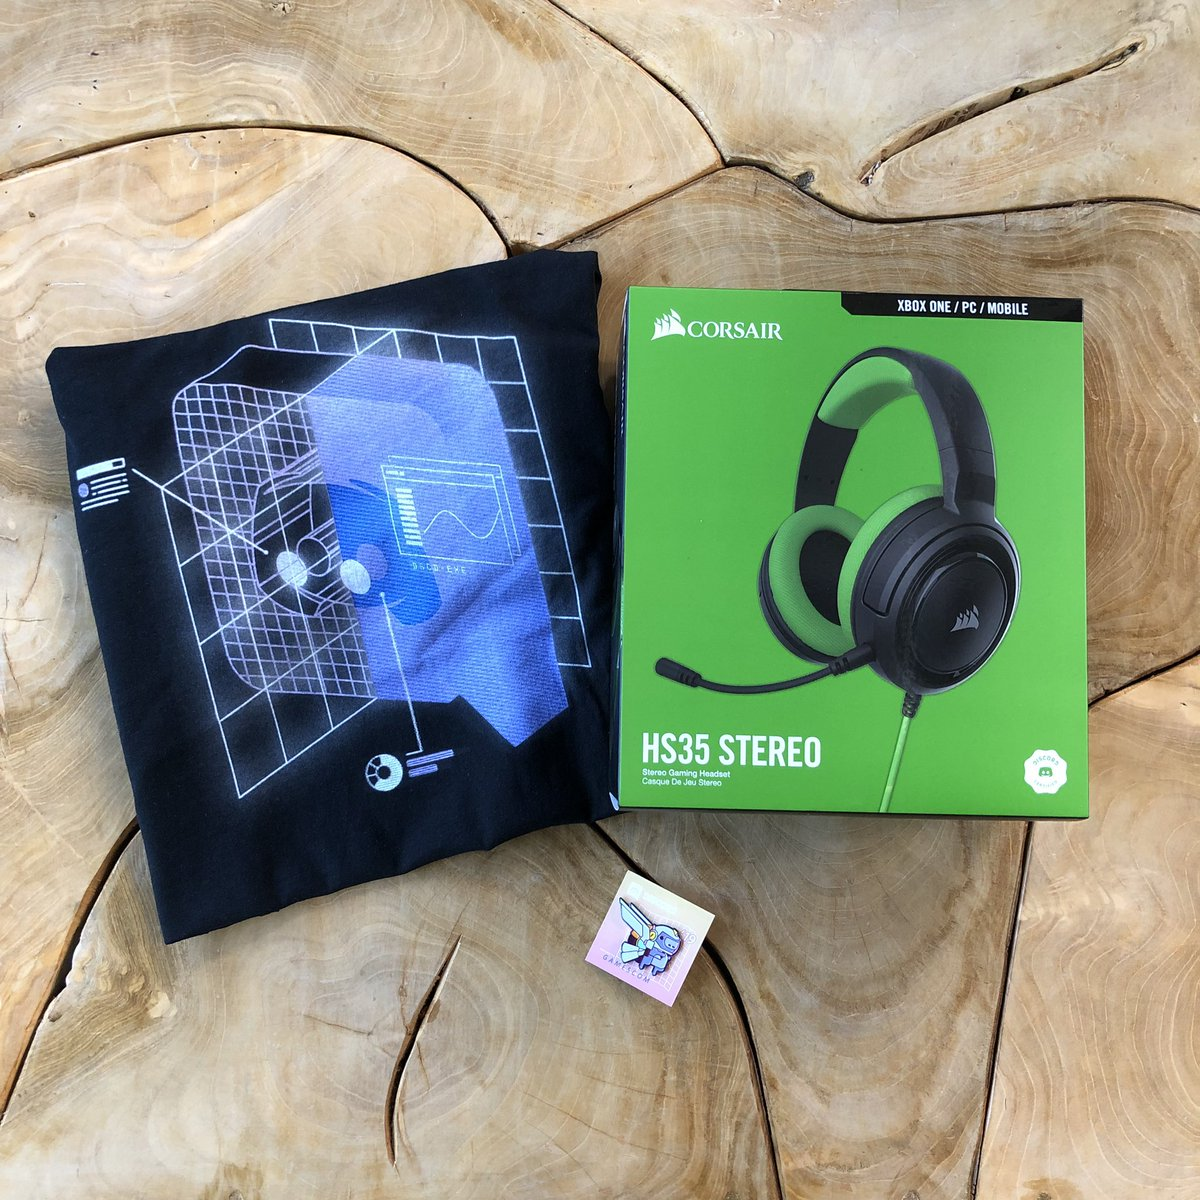 pals @CORSAIR gave us this super-new, cross-platform, discord-certified, really green headset for gamescom.  pressing the retweet button makes it green. do that for a chance to win all of this. <br>http://pic.twitter.com/VLIL3sSp9y